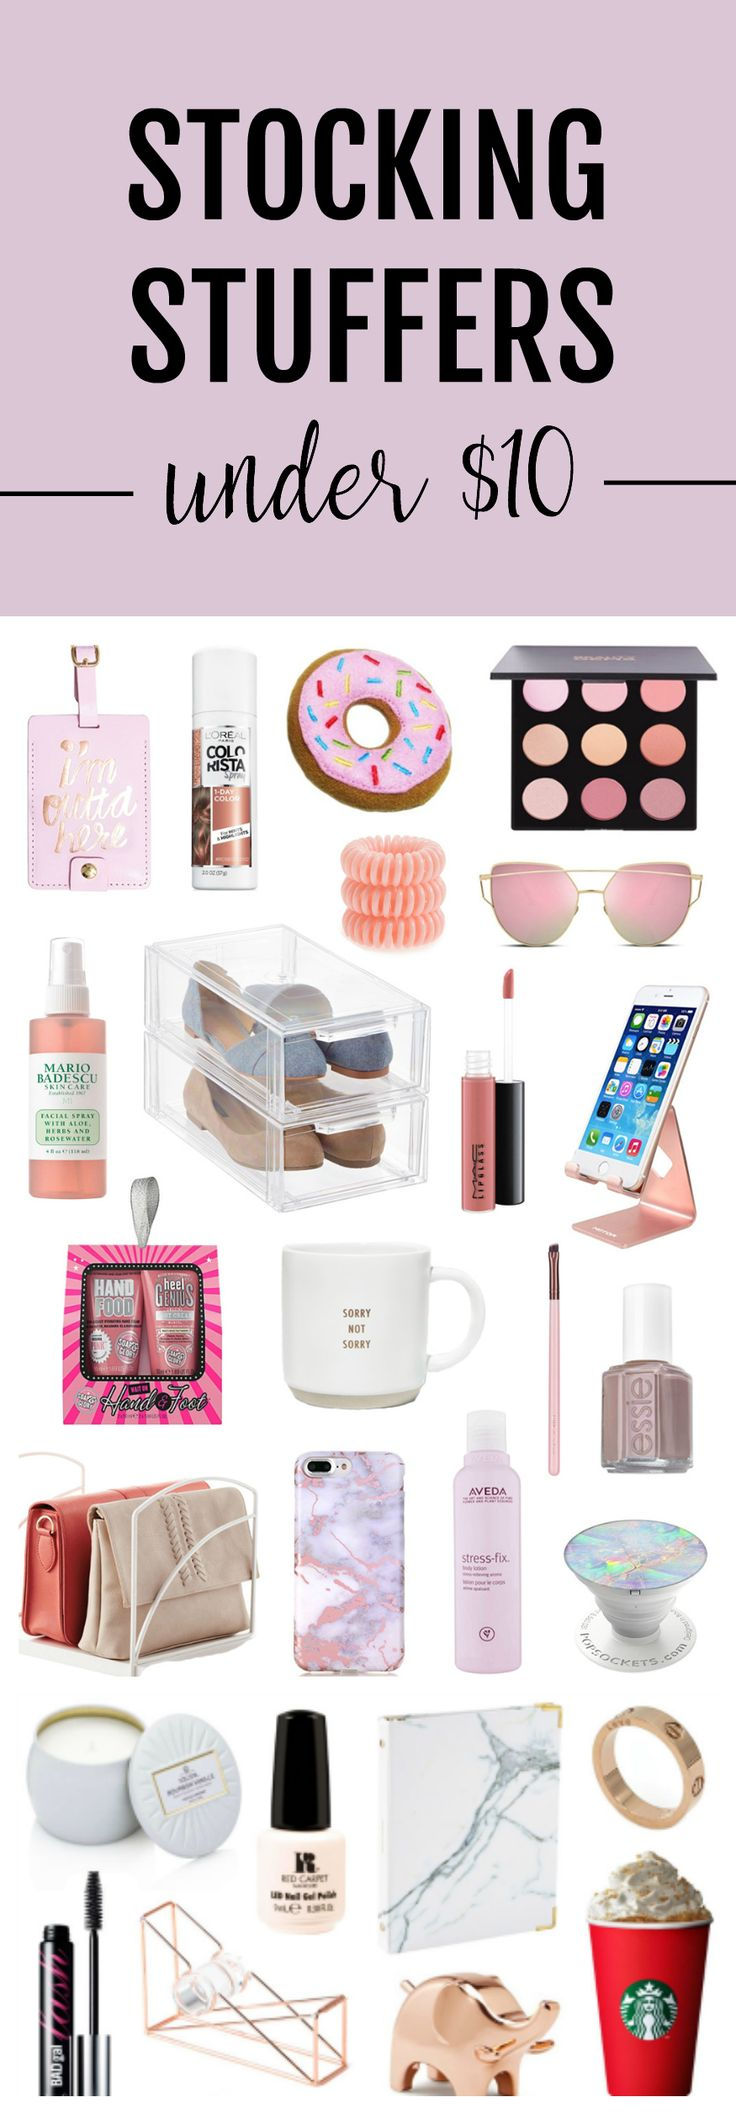 I want everything! | Fashion and beauty Mash Elle shares stocking stuffer gift ideas under $10. For those on a budget, these affordable, unique, trendy, fun gift ideas are perfect for the women in your life including: your mom, sister, neighbor, best friend, cousin, coworker, boss and so many more! #affordablegifts #giftsunder10 #giftsforher #stockingstuffers #christmasgifts #giftguide